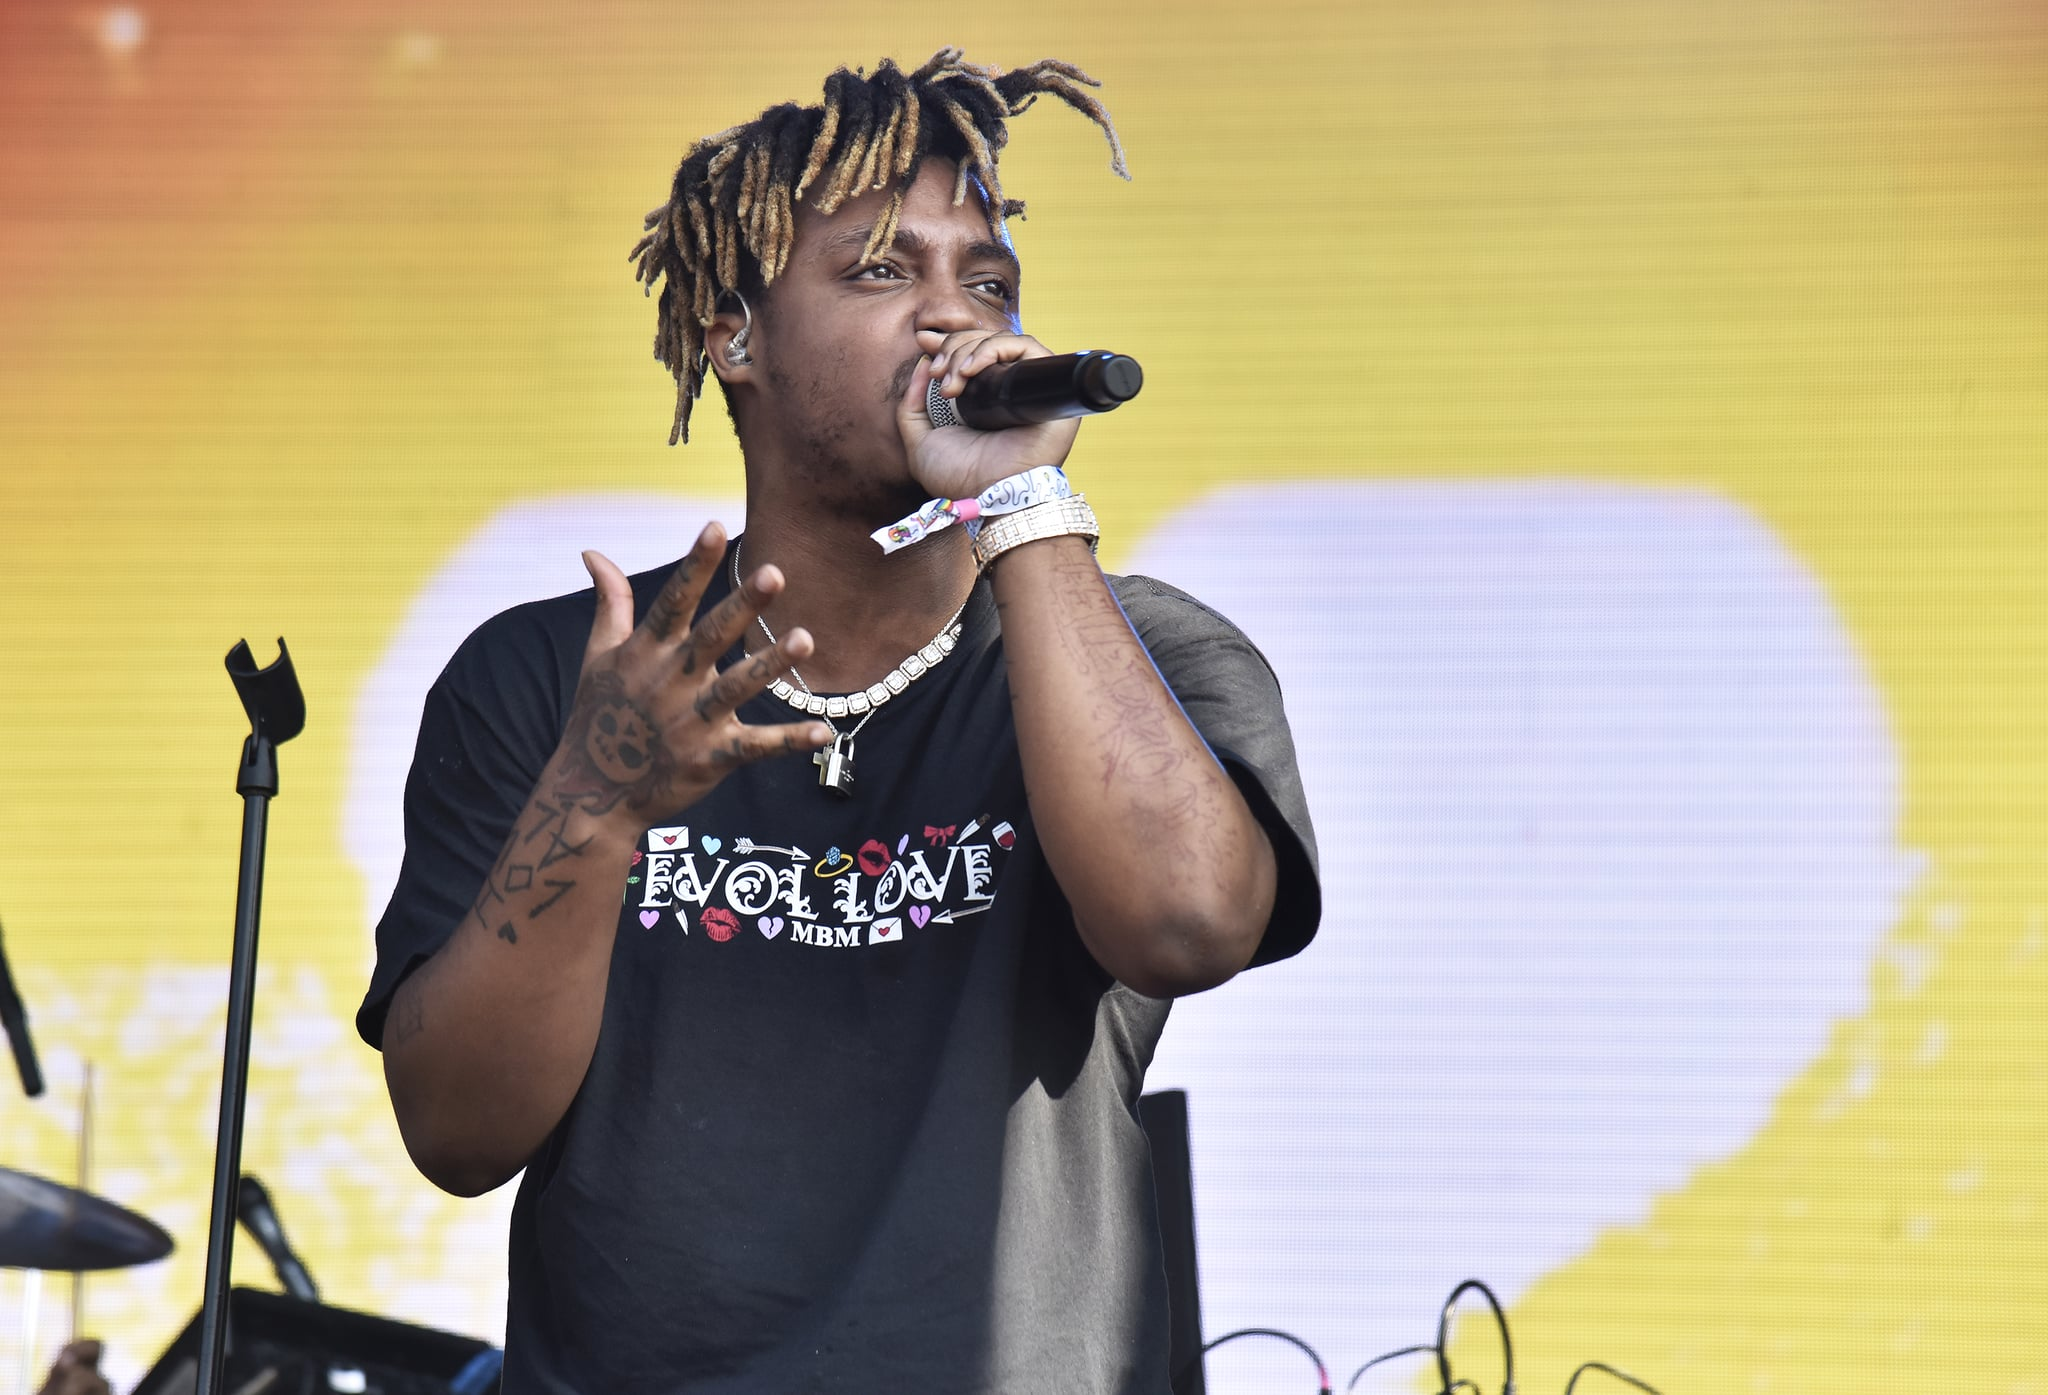 MANCHESTER, TENNESSEE - JUNE 15: Juice WRLD performs during the 2019 Bonnaroo Music & Arts Festival on June 15, 2019 in Manchester, Tennessee. (Photo by Tim Mosenfelder/Getty Images)